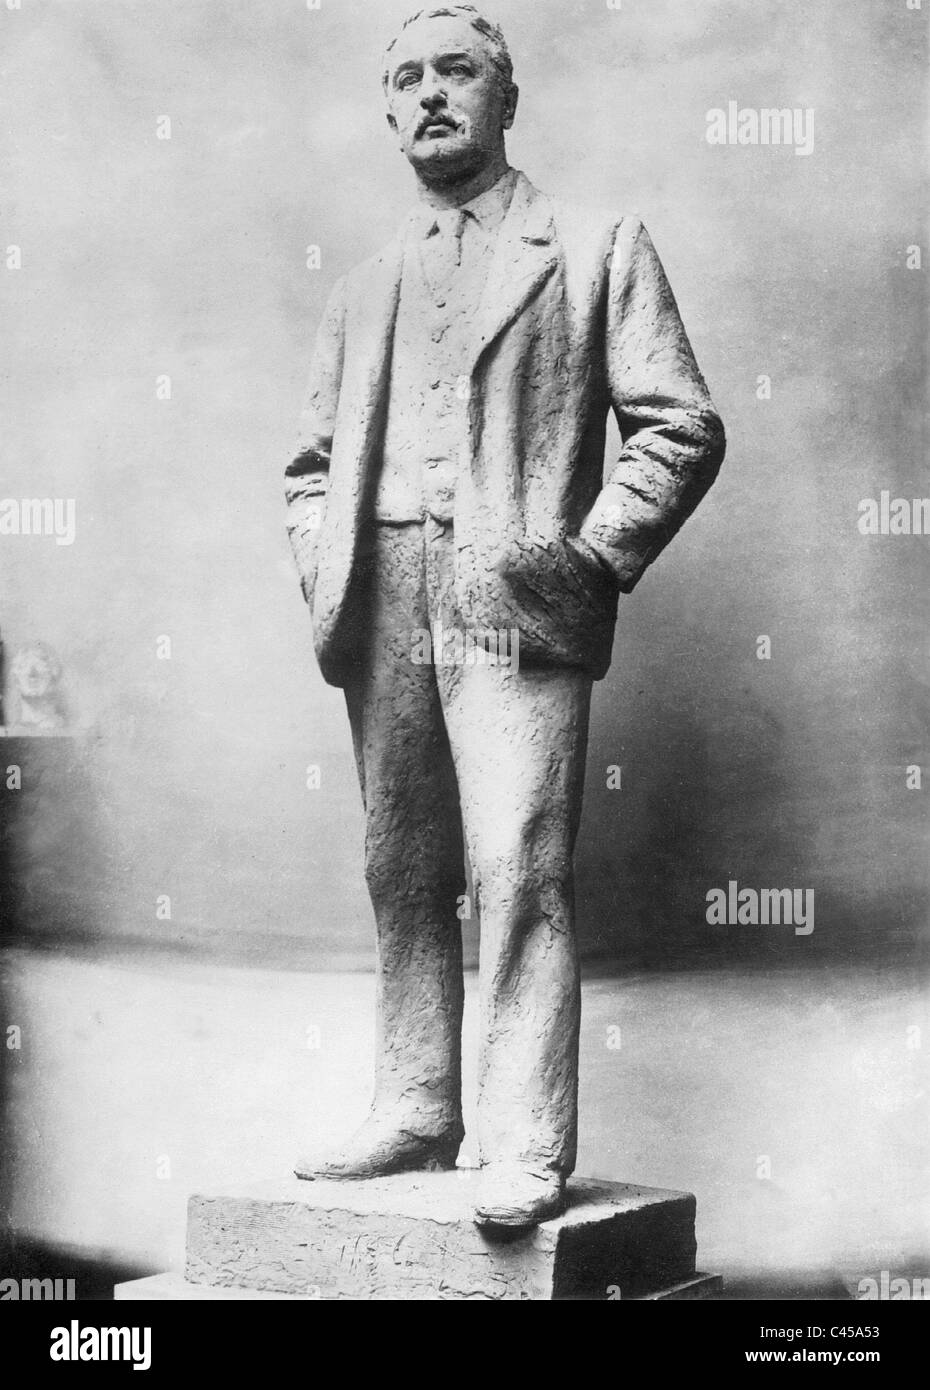 Statue of Cecil Rhodes, 1928 - Stock Image